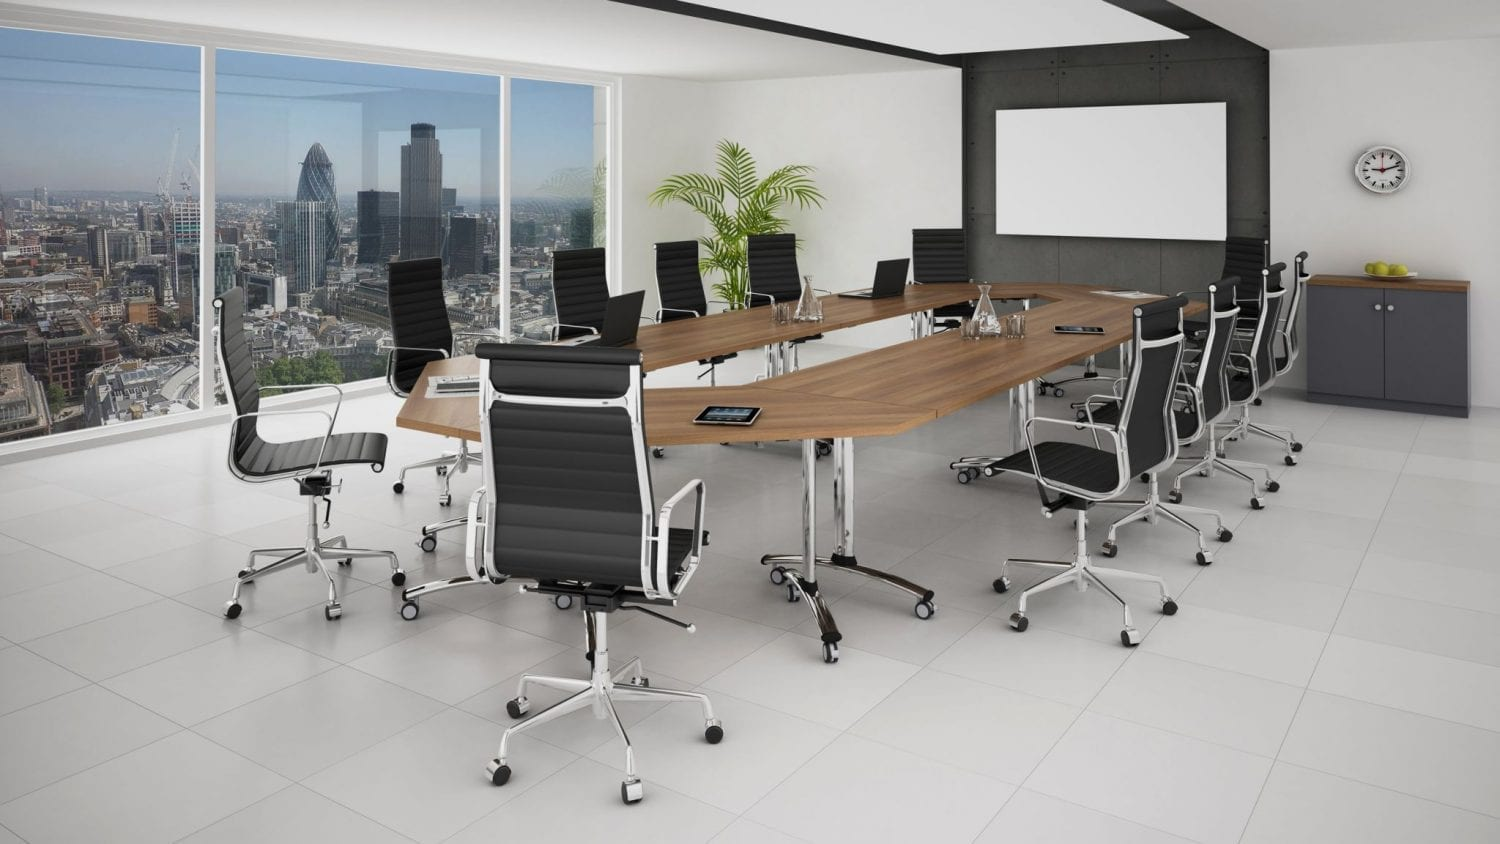 Office furniture manchester new used office furniture - Office furnitur ...